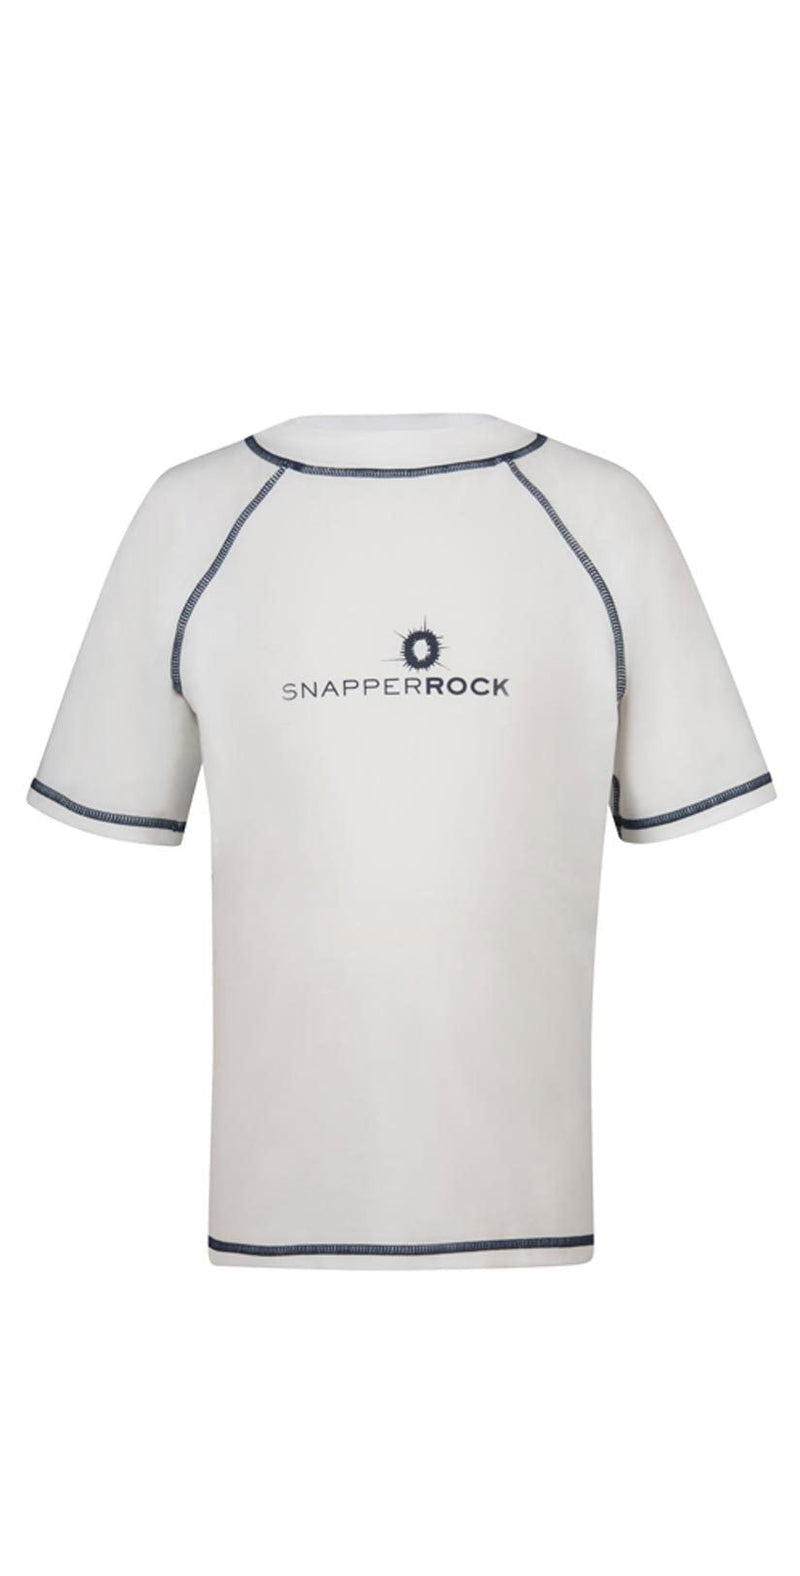 Snapperrock Boy's Short Sleeve Rashguard Top in White 125: